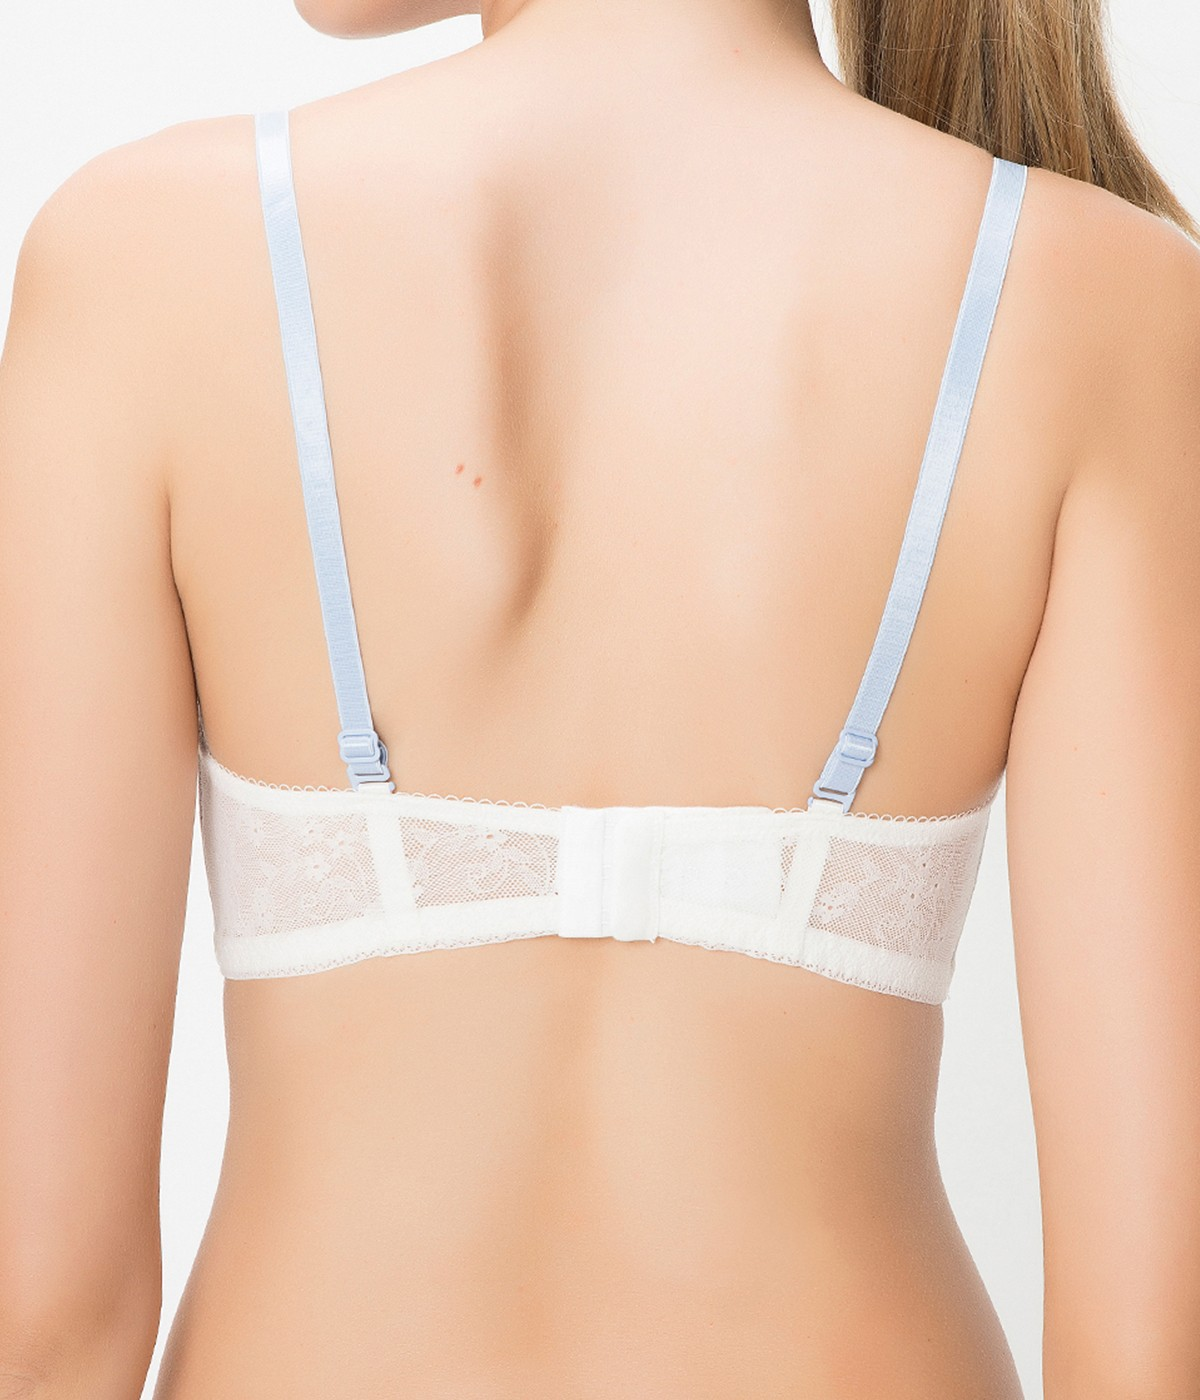 Stardoll Balconette Push Up Bra